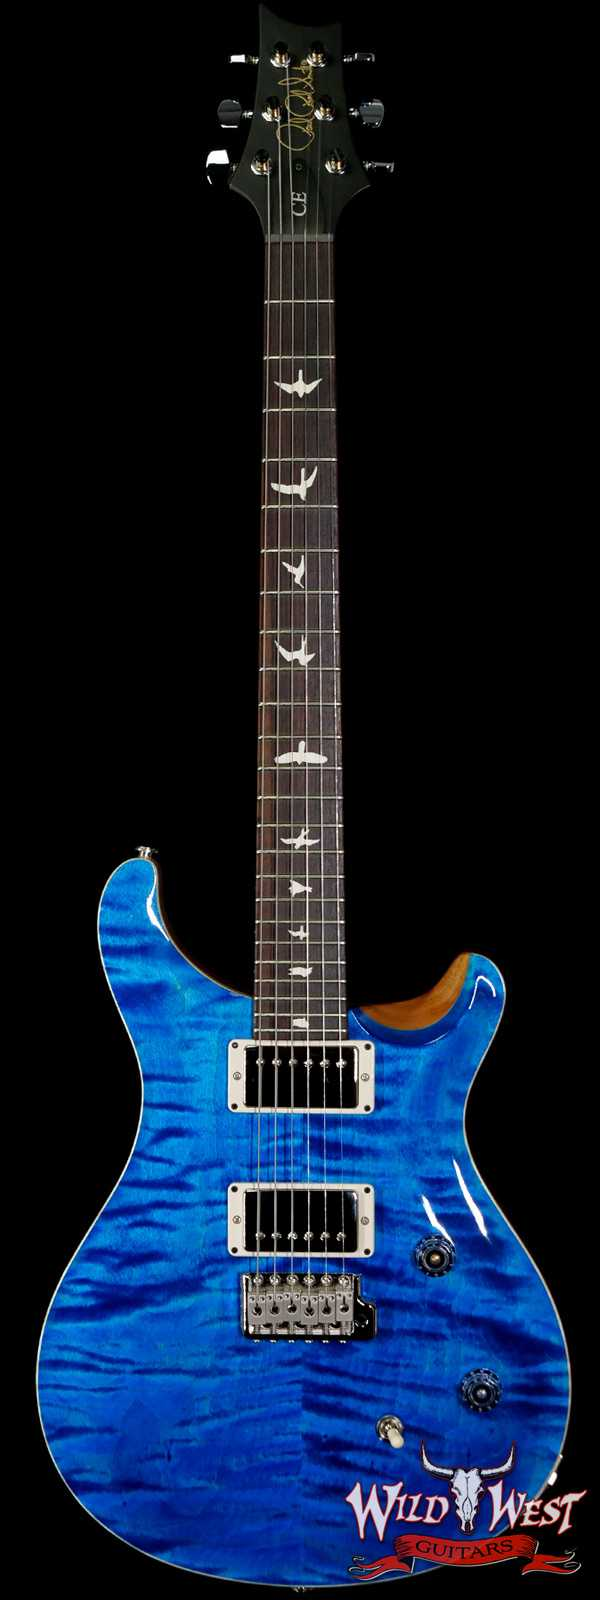 PRS Wild West Guitars Special Run CE 24 Flame Top Painted Neck 57/08 Pickups Blue Matteo 296659